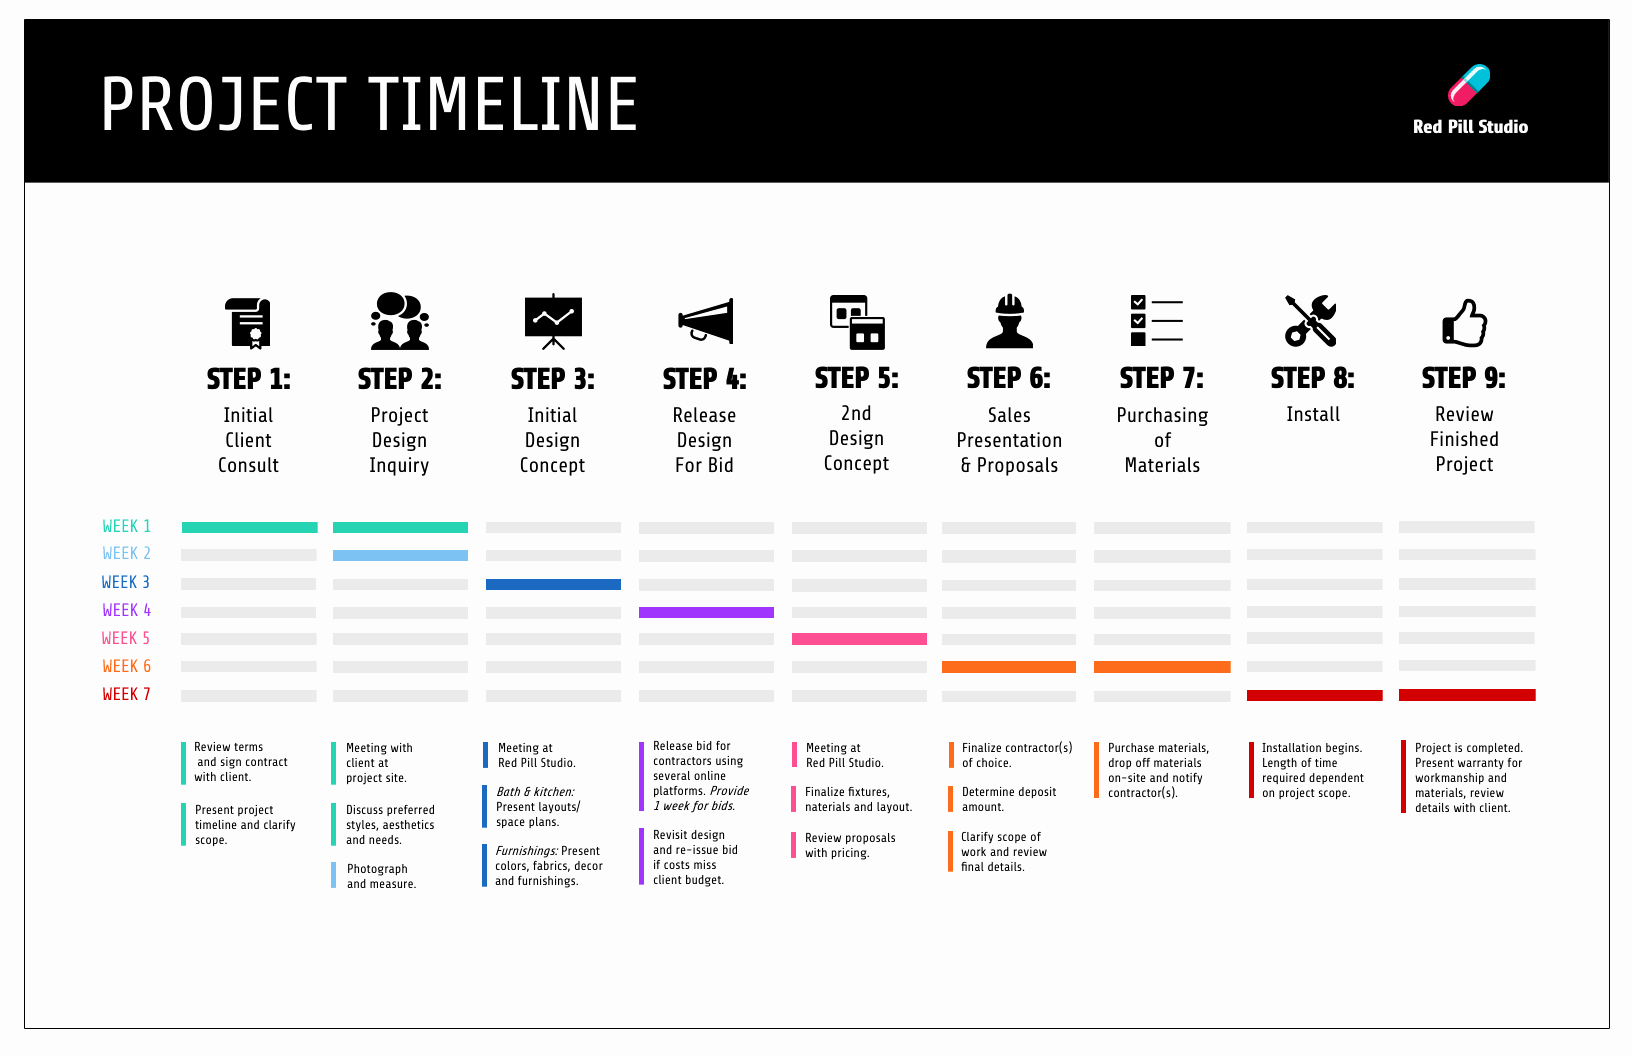 Project Plan Template Microsoft Word Beautiful 15 Project Plan Templates to Visualize Your Strategy